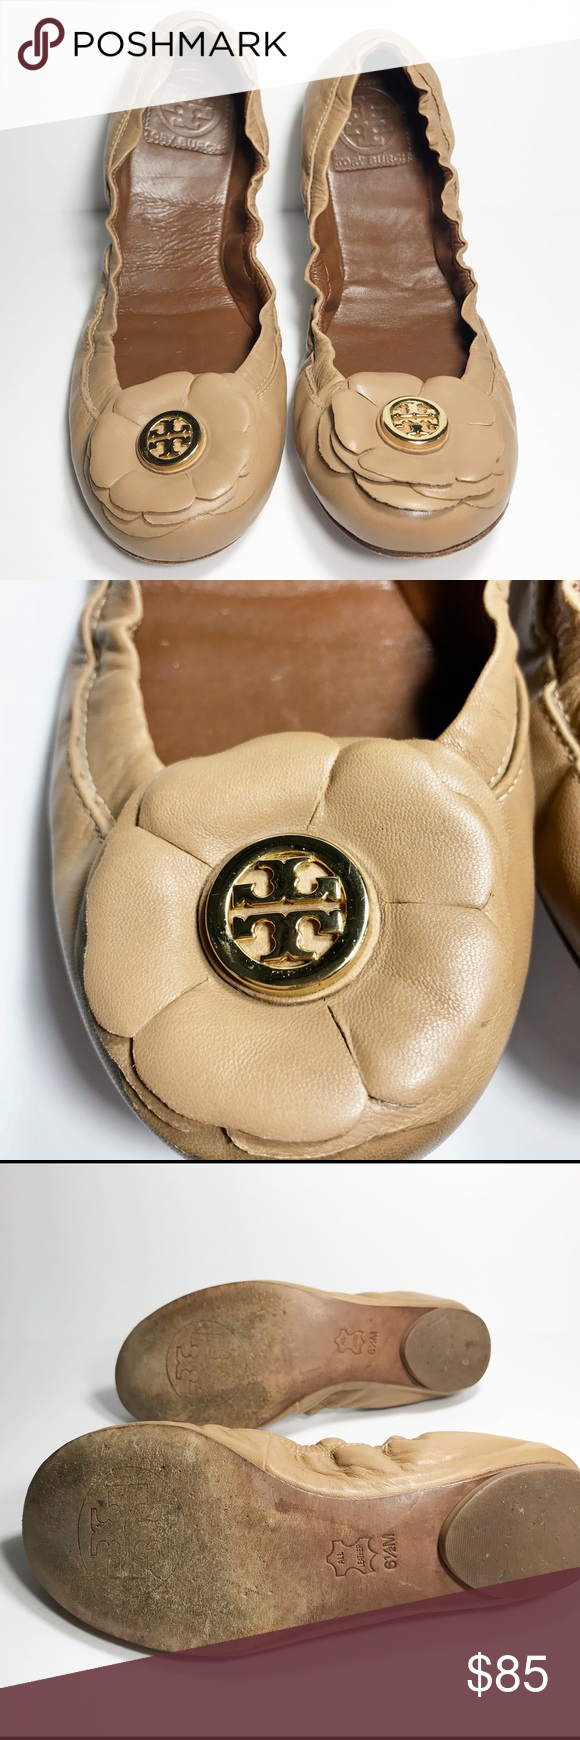 943d4a8a961 Tory Burch Shelby Ballet Flower Flats. Gently Used Tory Burch Shelby Ballet  Flat in Genuine Tan Leather With Flower Detail and Gold Logo.